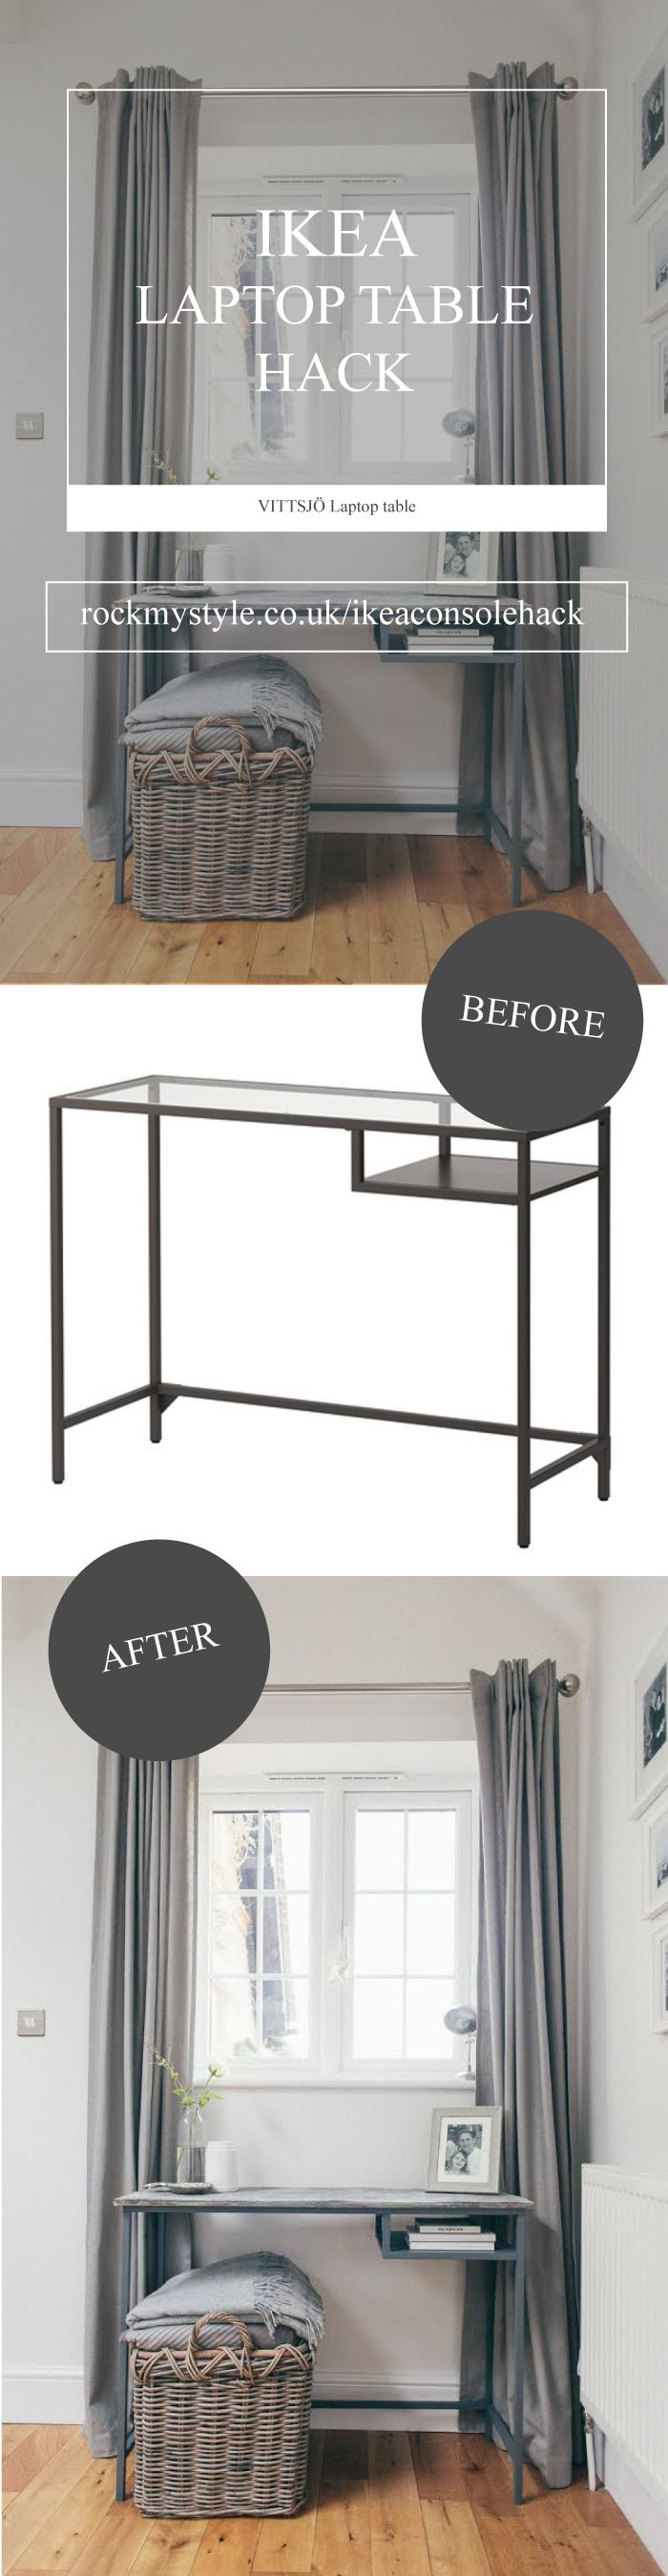 les 25 meilleures id es de la cat gorie table console ikea sur pinterest console ikea tv. Black Bedroom Furniture Sets. Home Design Ideas